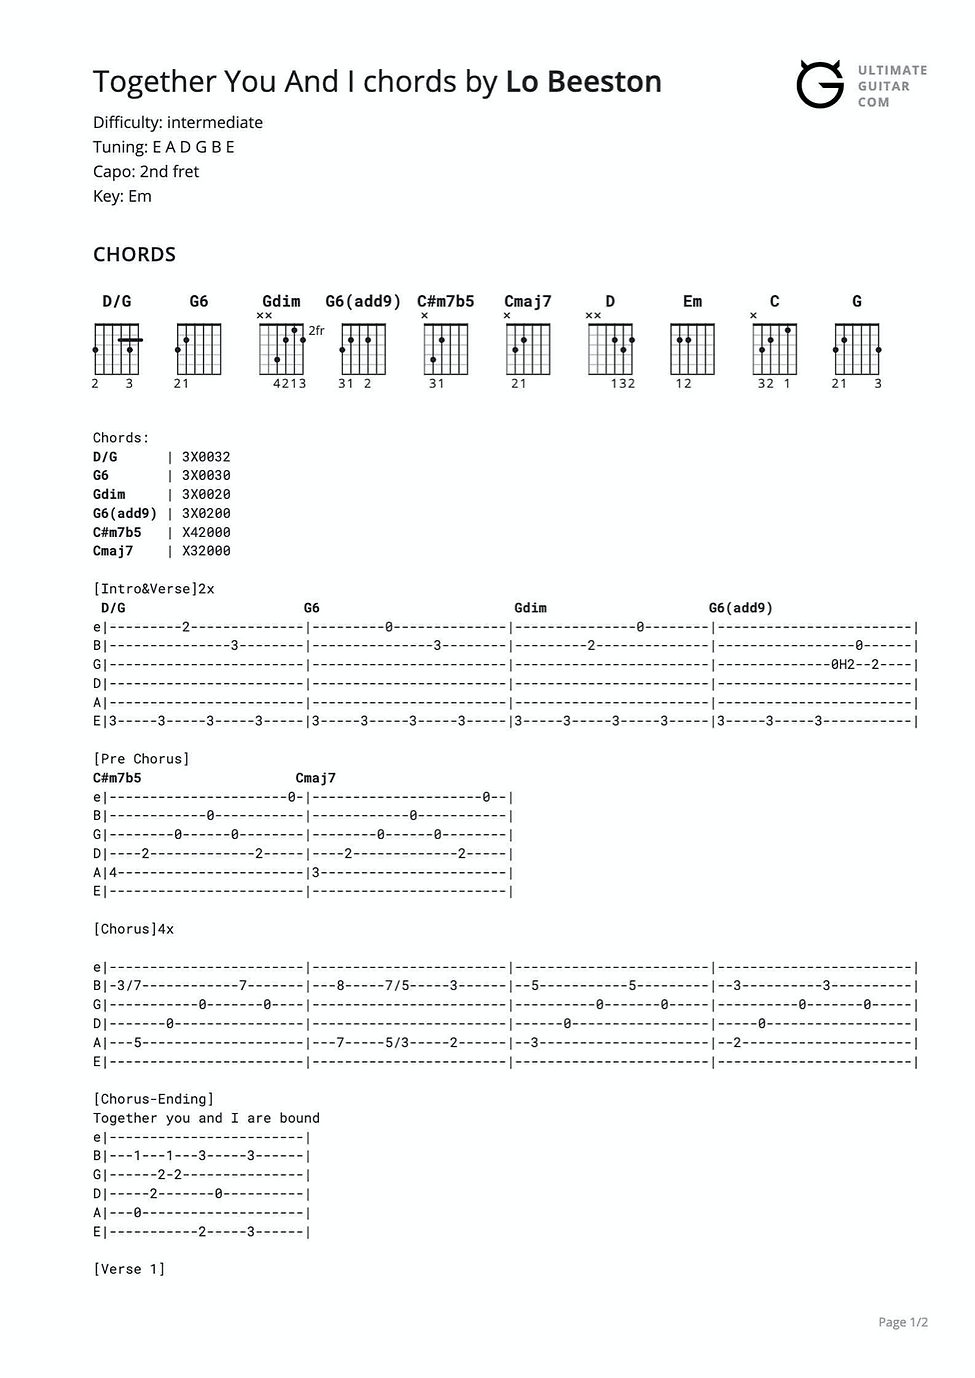 together you and i chords.png